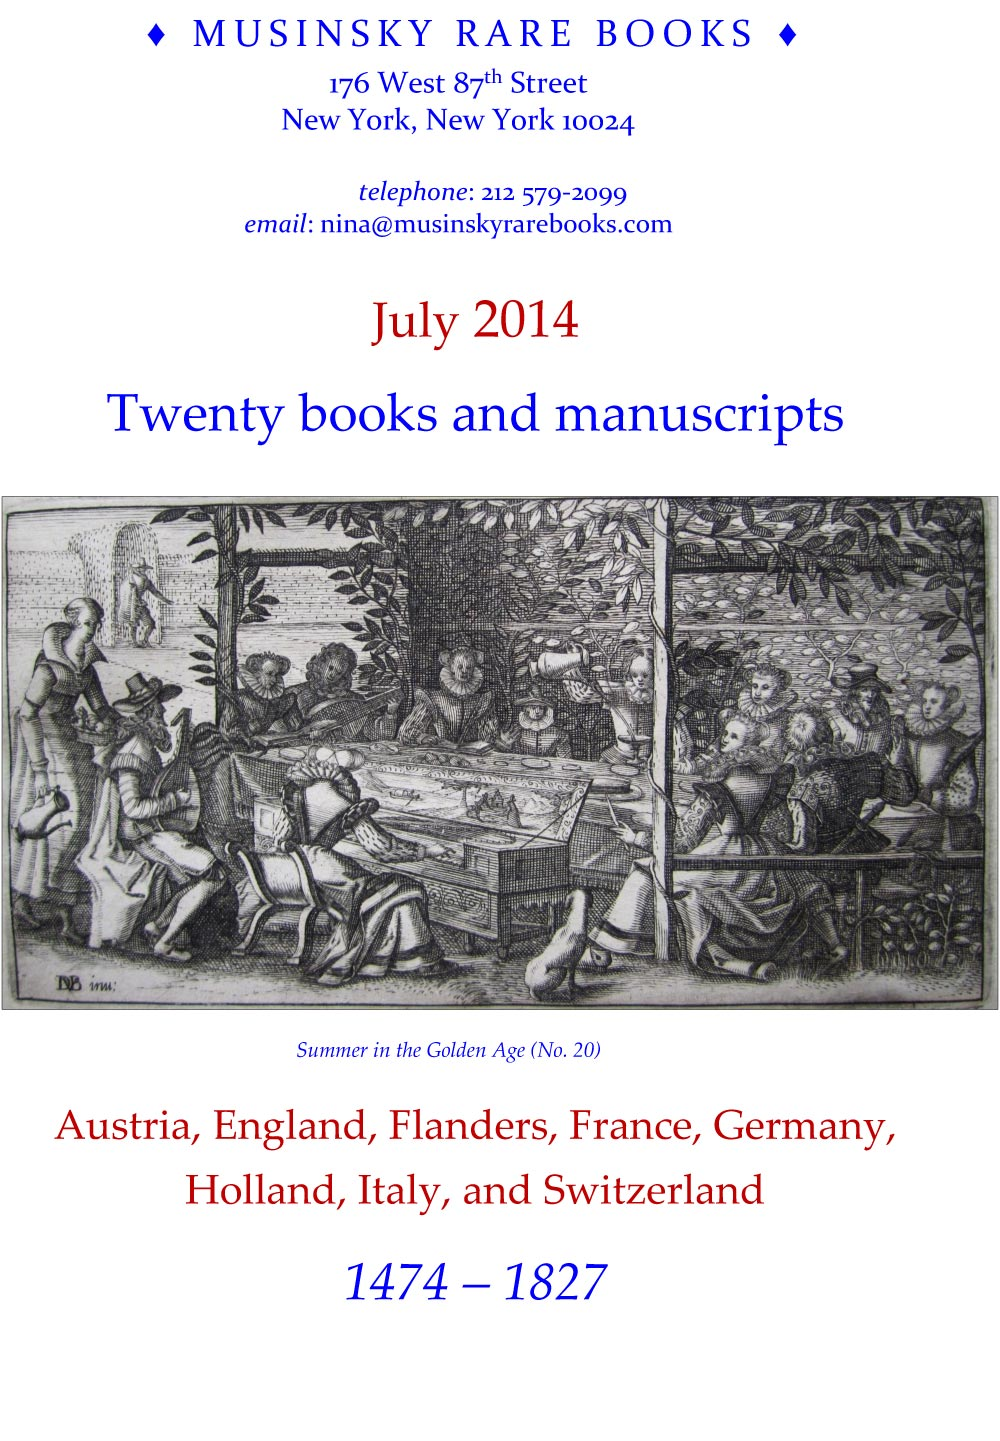 July 2014 - 20 books and manuscripts